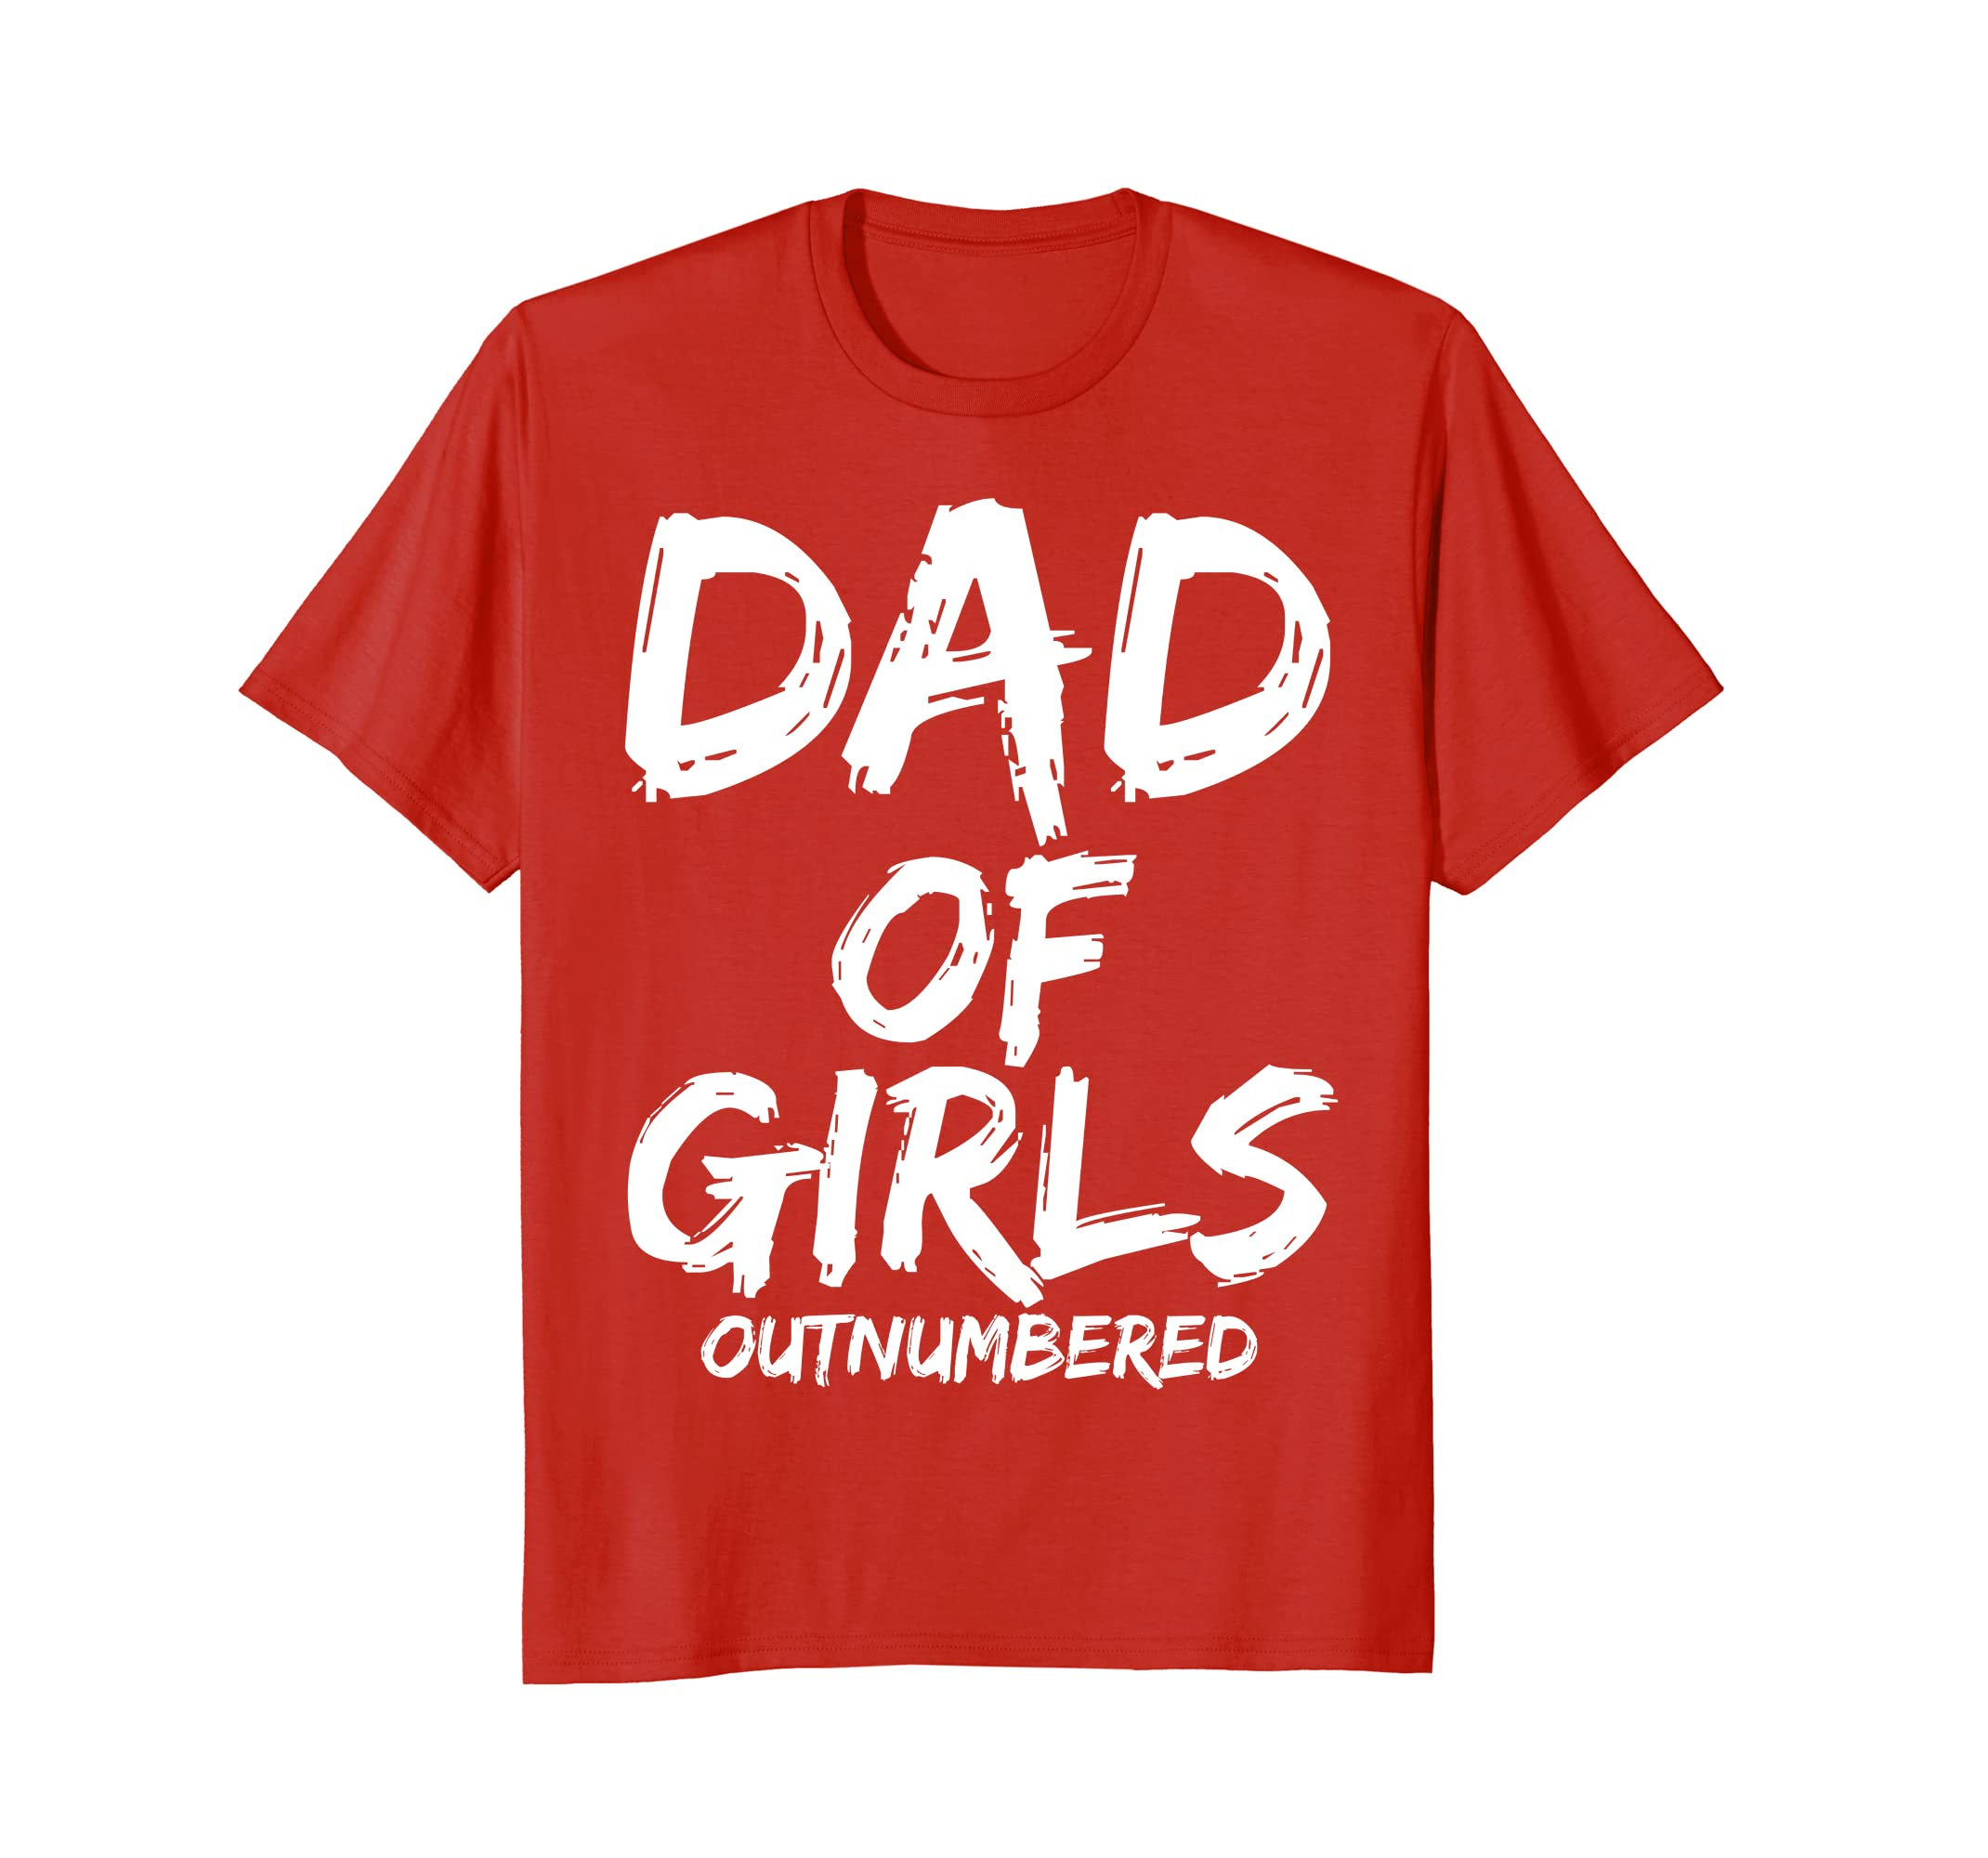 1777e74b Dad of Girls Outnumbered Shirt Funny Girl Father Daughters-ah my shirt one  gift – Ahmyshirt